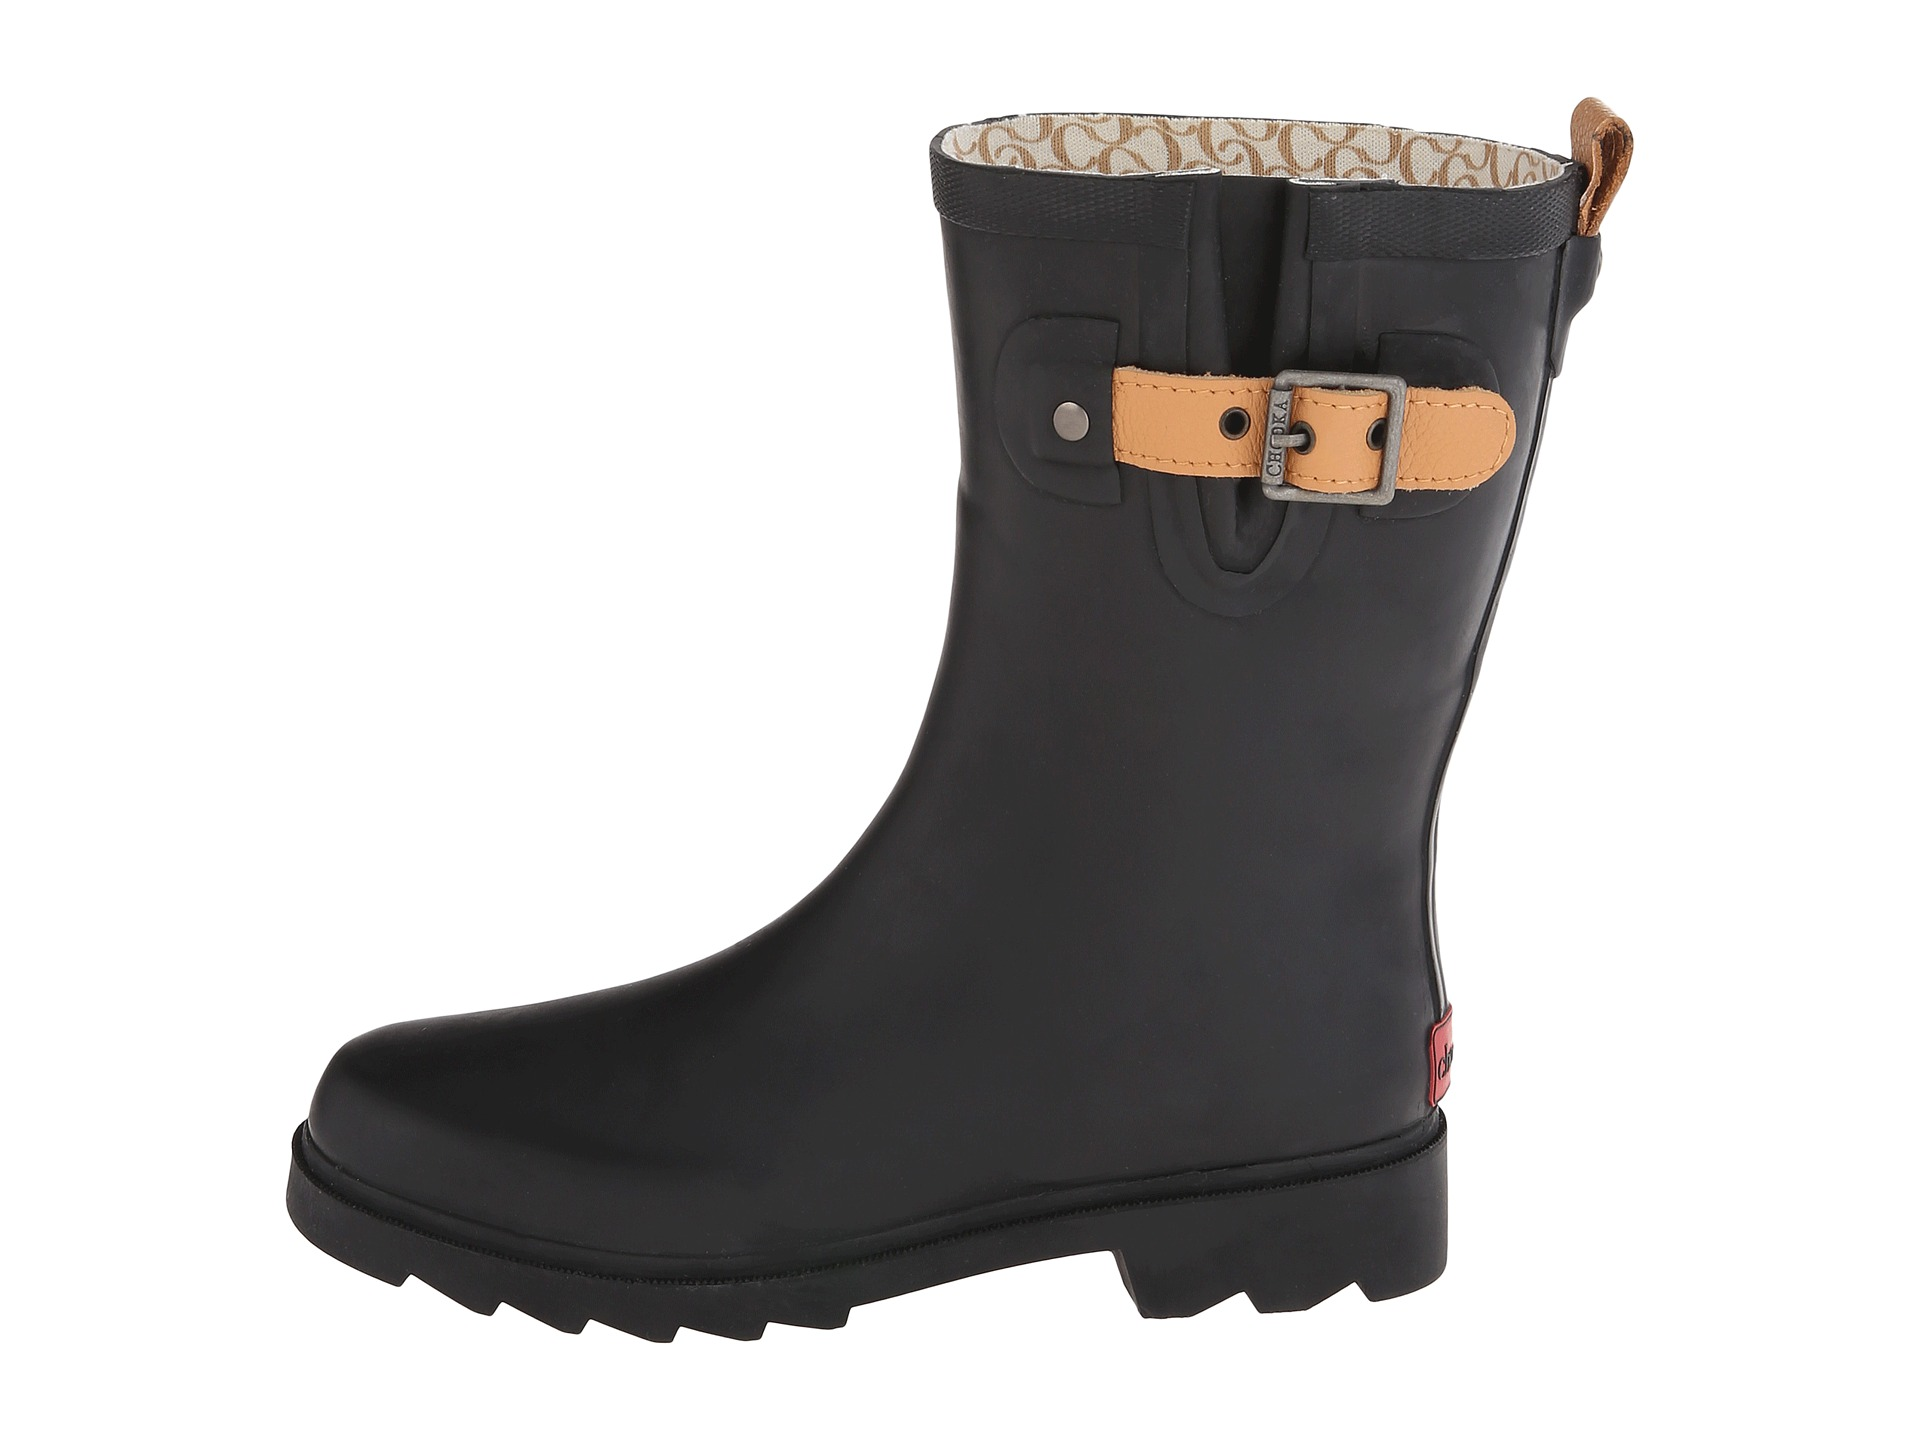 Chooka Top Solid Mid Rain Boot - Zappos.com Free Shipping BOTH Ways